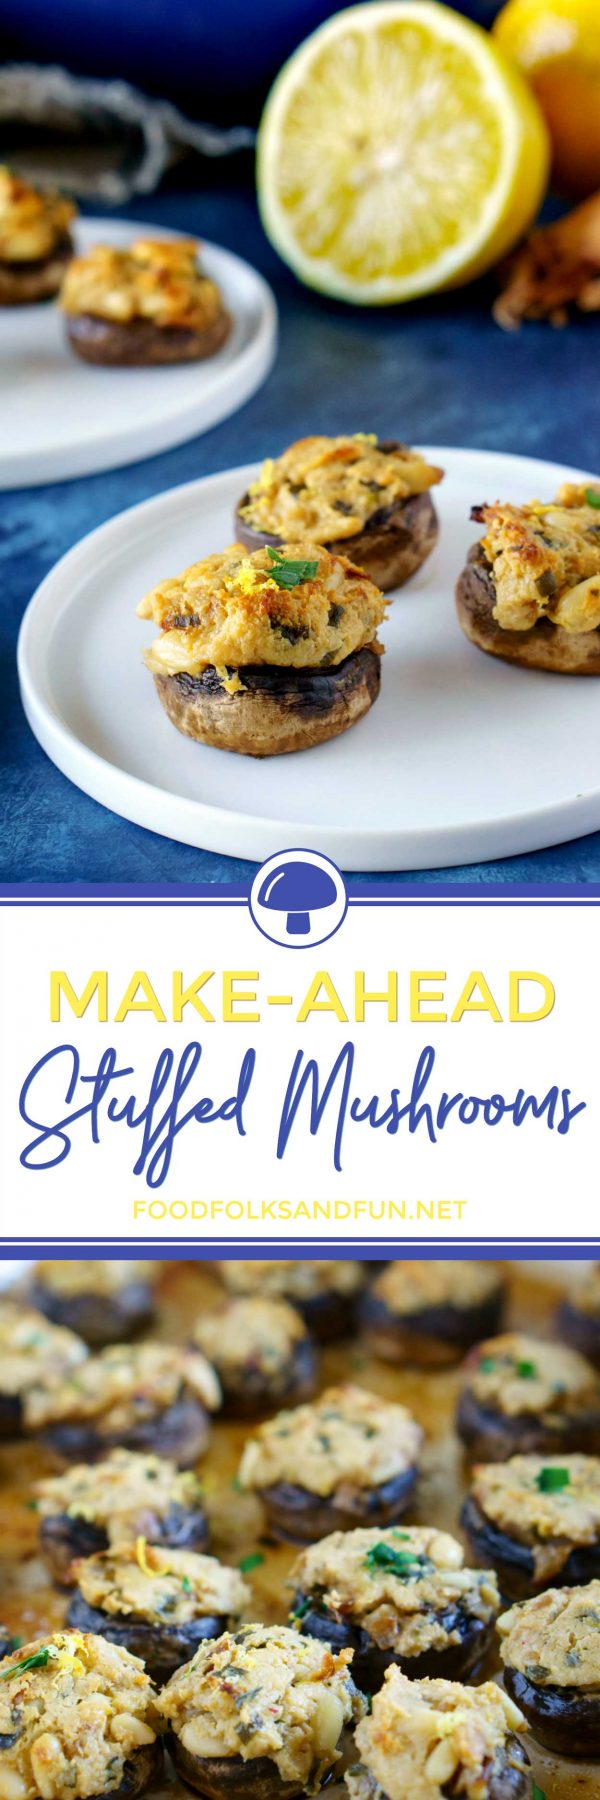 Make-Ahead Stuffed Mushrooms with Goat Cheese and Pine Nuts are a great Thanksgiving appetizer that you can make the day before! via @foodfolksandfun